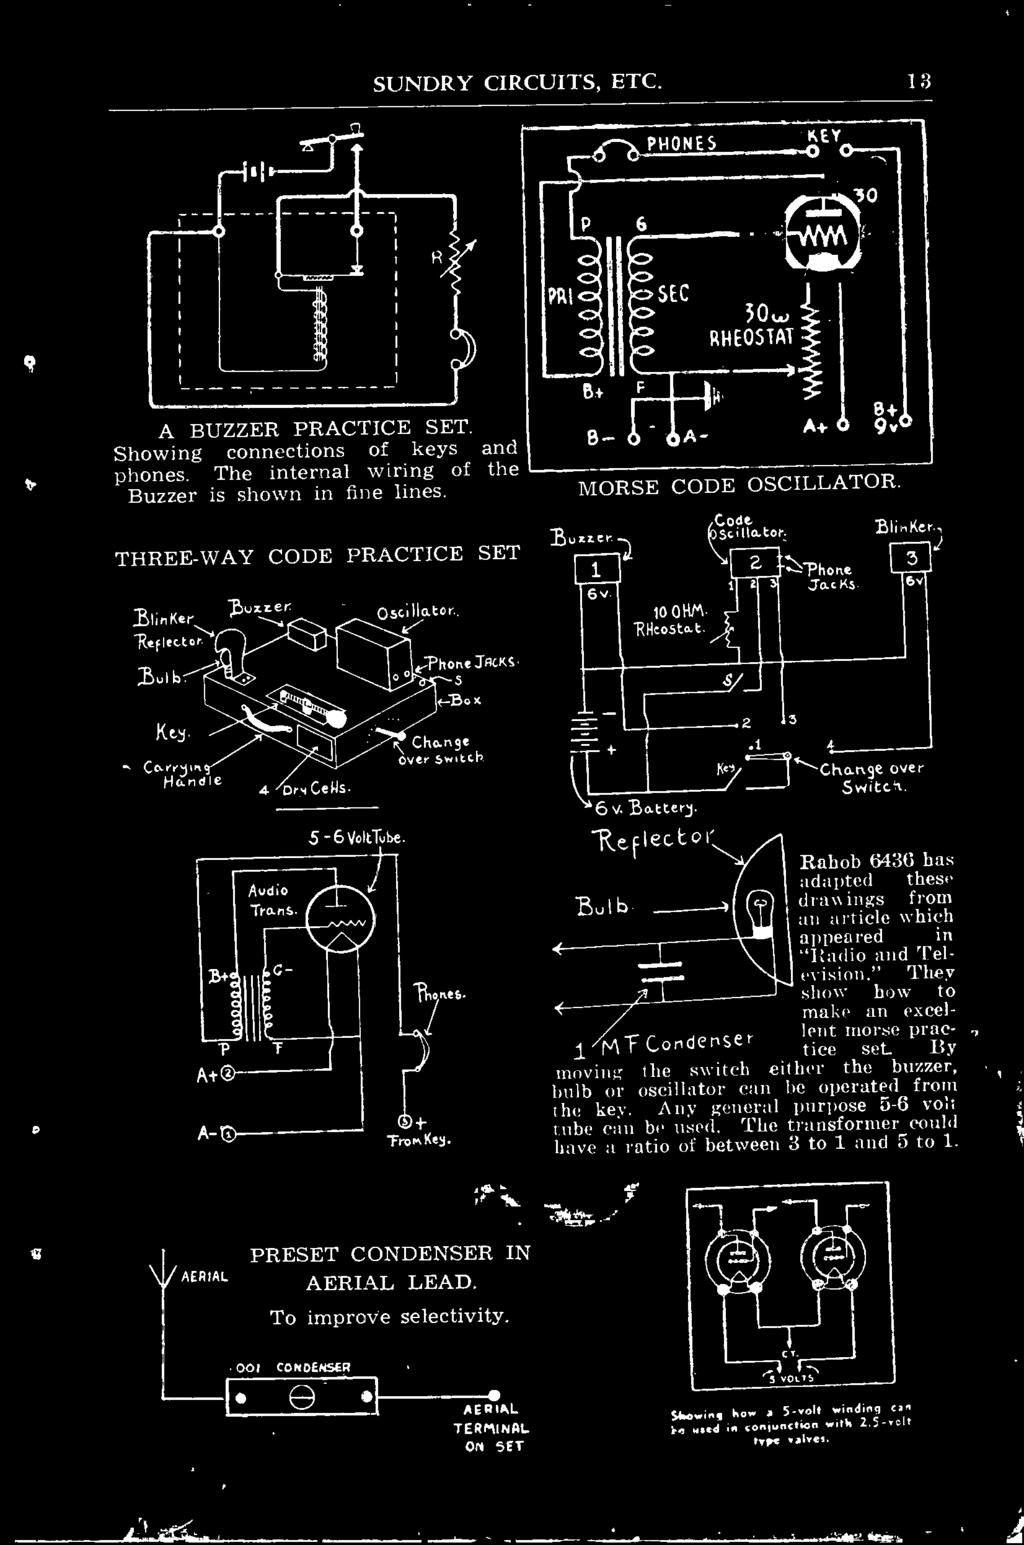 Radio Circuits Lamphouse Lectric Lamp House Ltd The Pdf 9 Volt Buzzer Circuit Diagram Rahob 6436 Has Adapted These Bulb Drawings From An Article Which Appeared In And